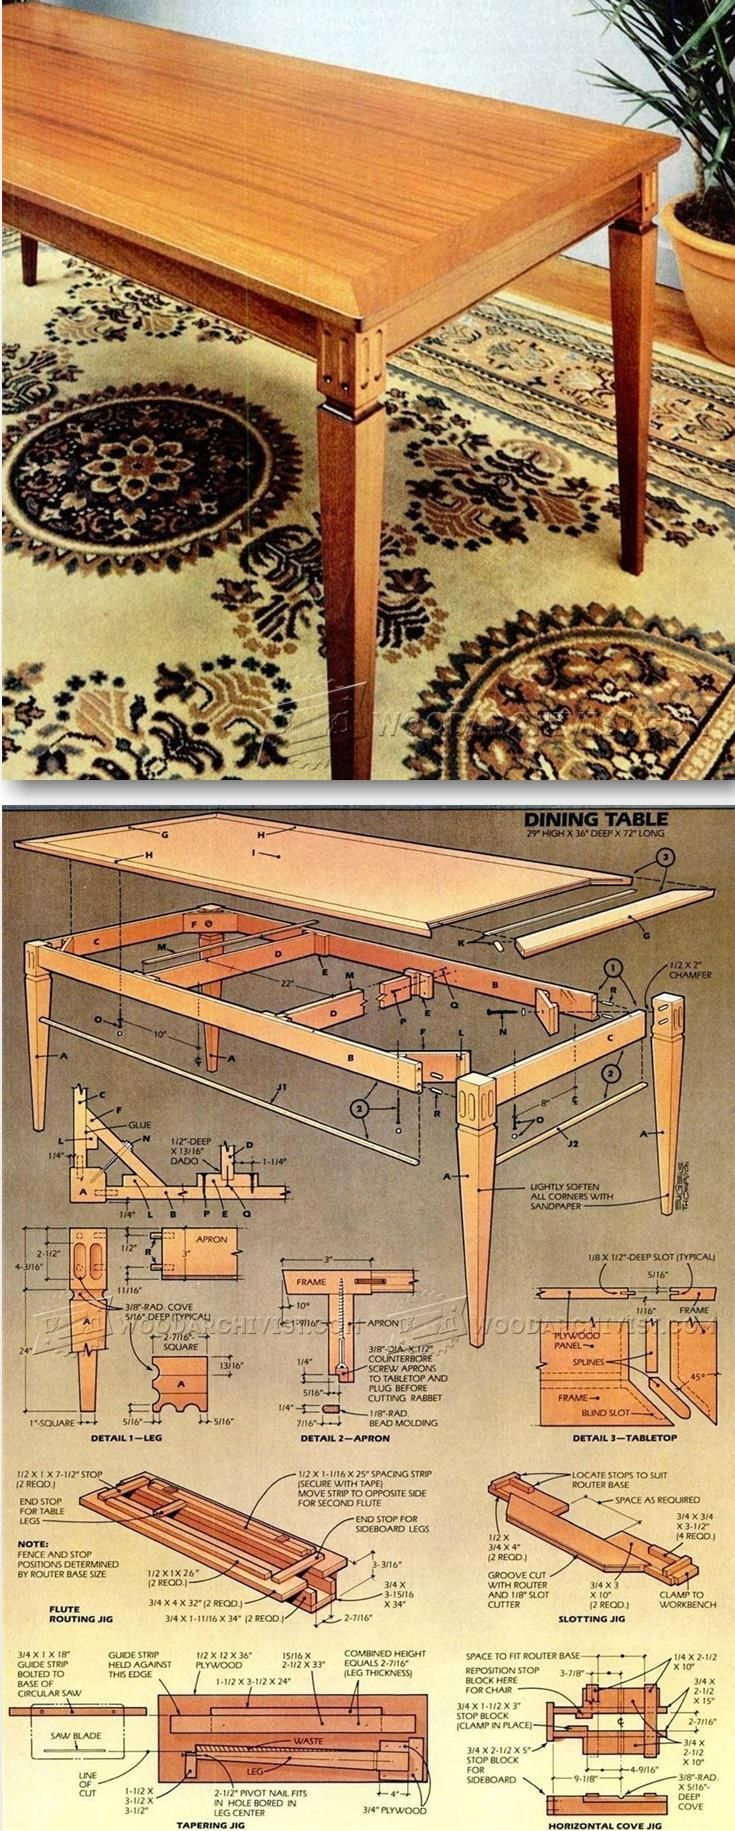 Dining Room Table Plans Furniture, Shaker Dining Room Table Plans